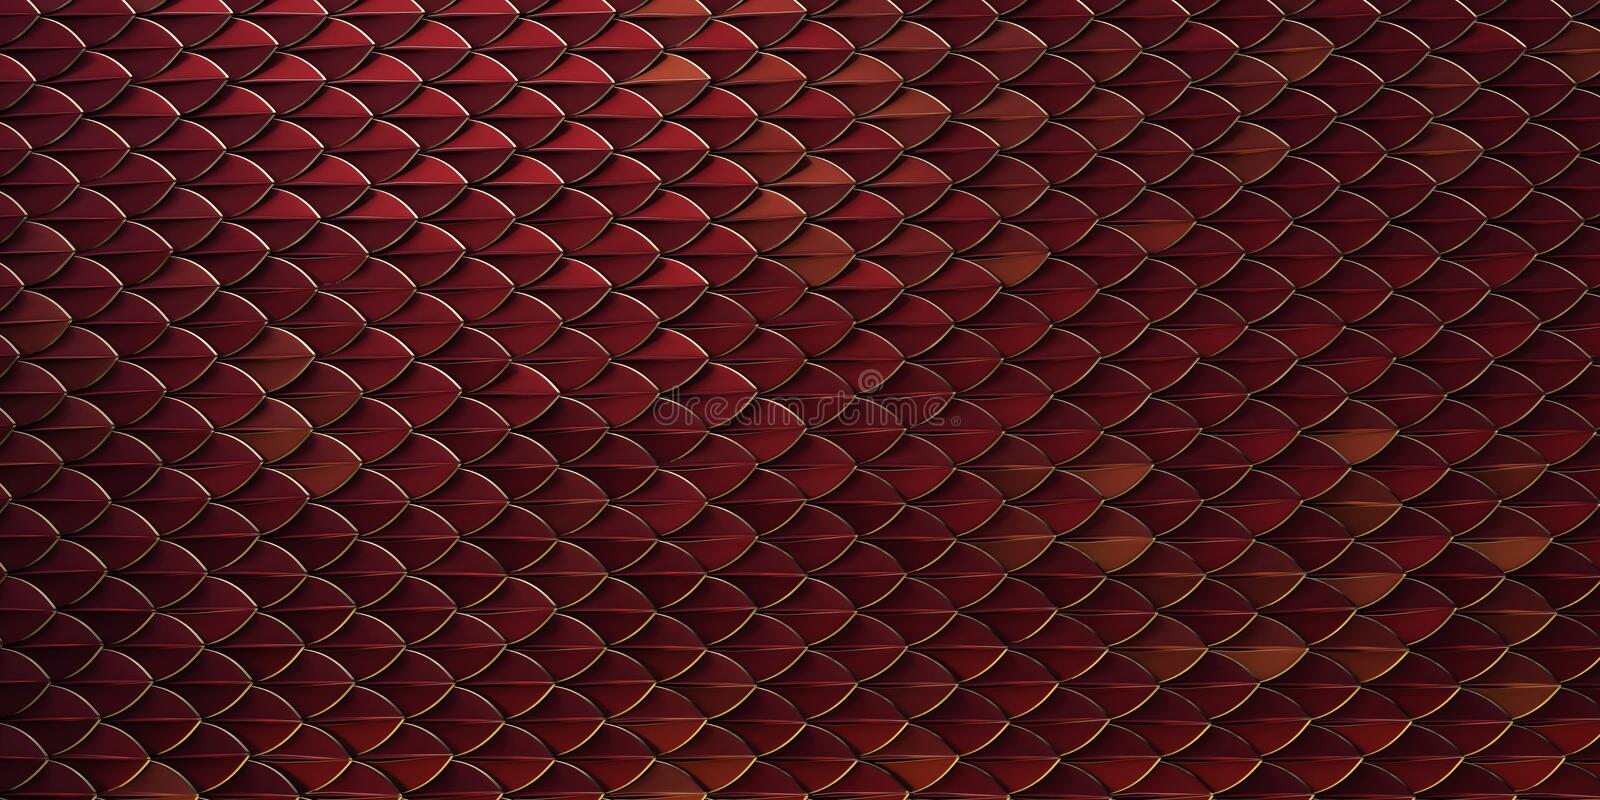 Red and gold dragon reptile fish snake skales pattern backround. dragon skin 3d rendered background.  stock image